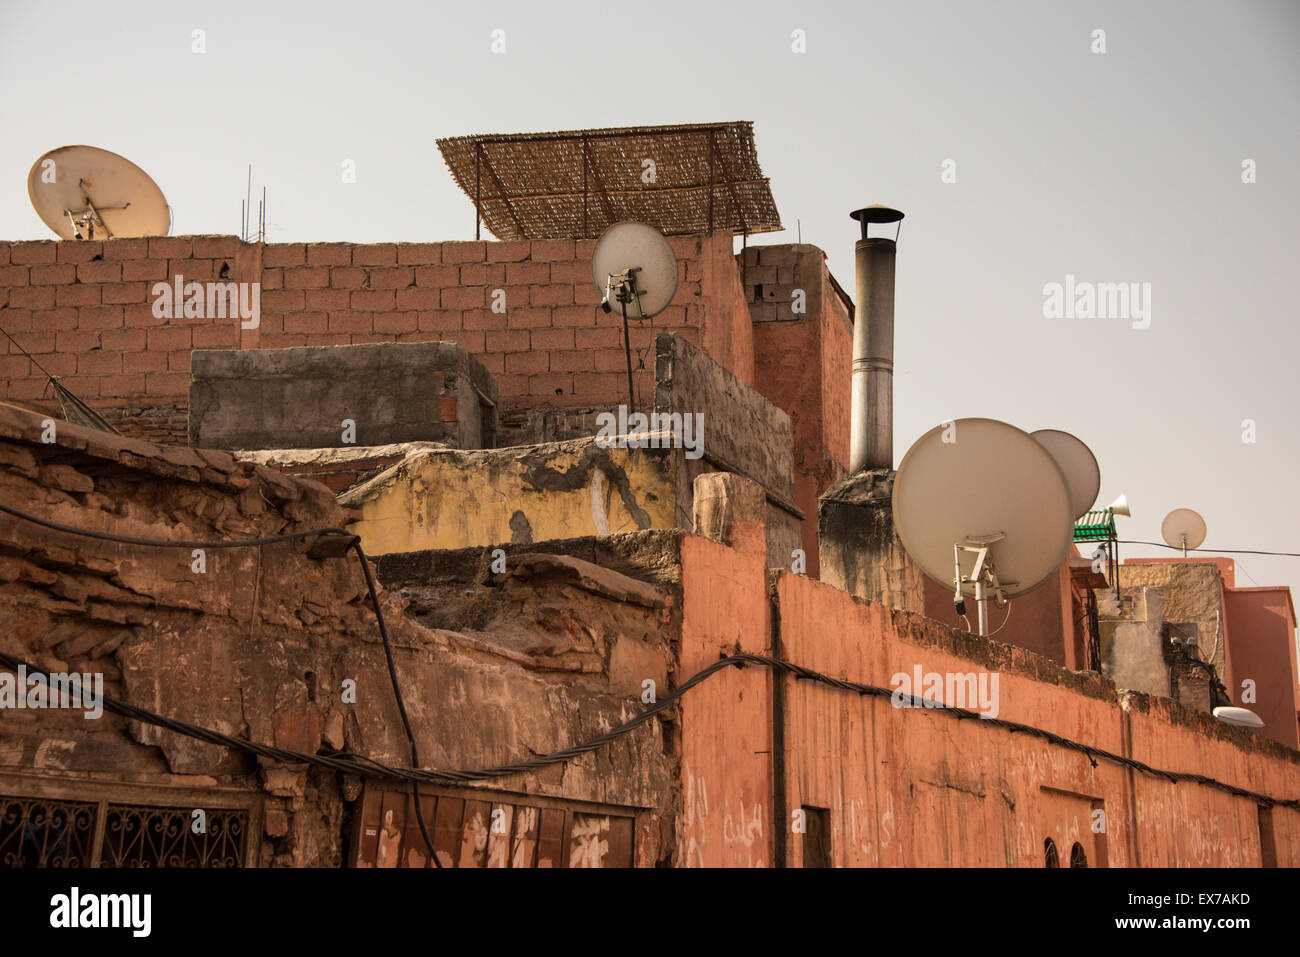 Technology in Morocco - Marrakech - Stock Image